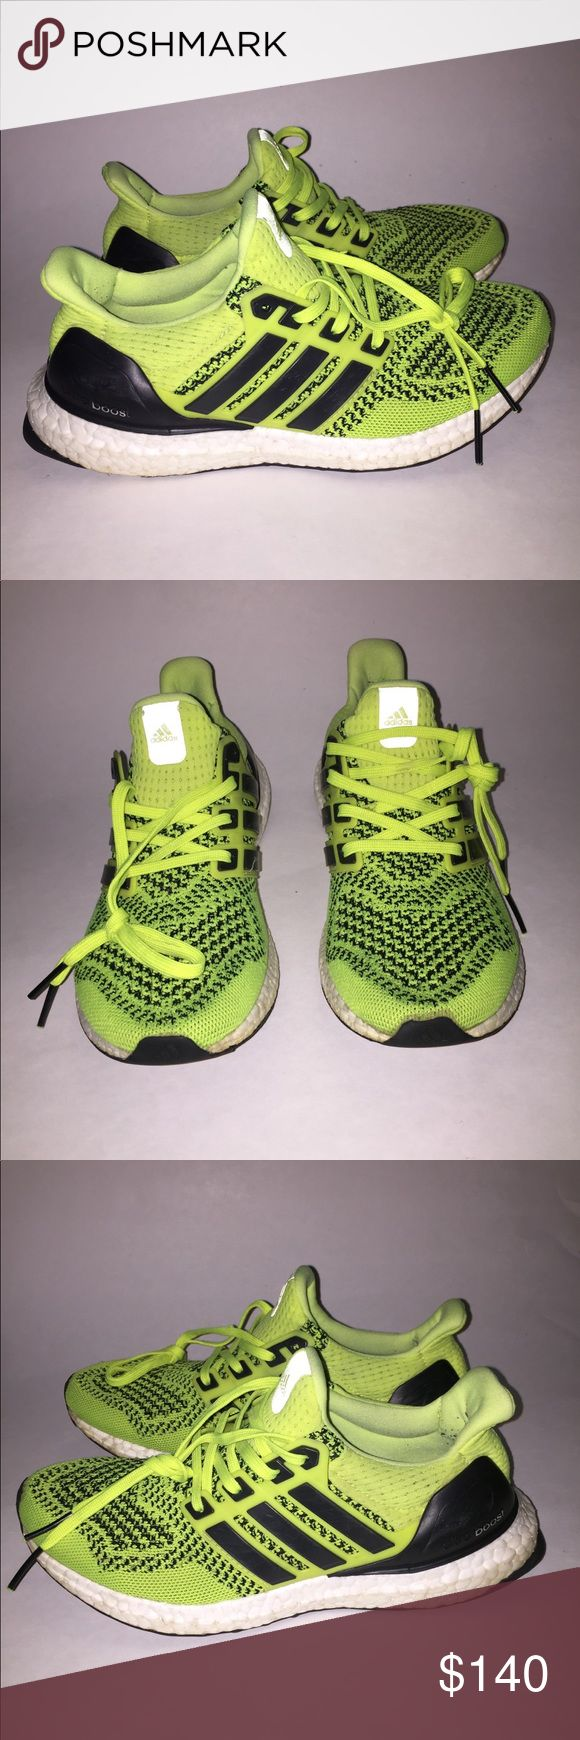 Adidas ultra boost Size 6 Og all adidas Shoes Sneakers